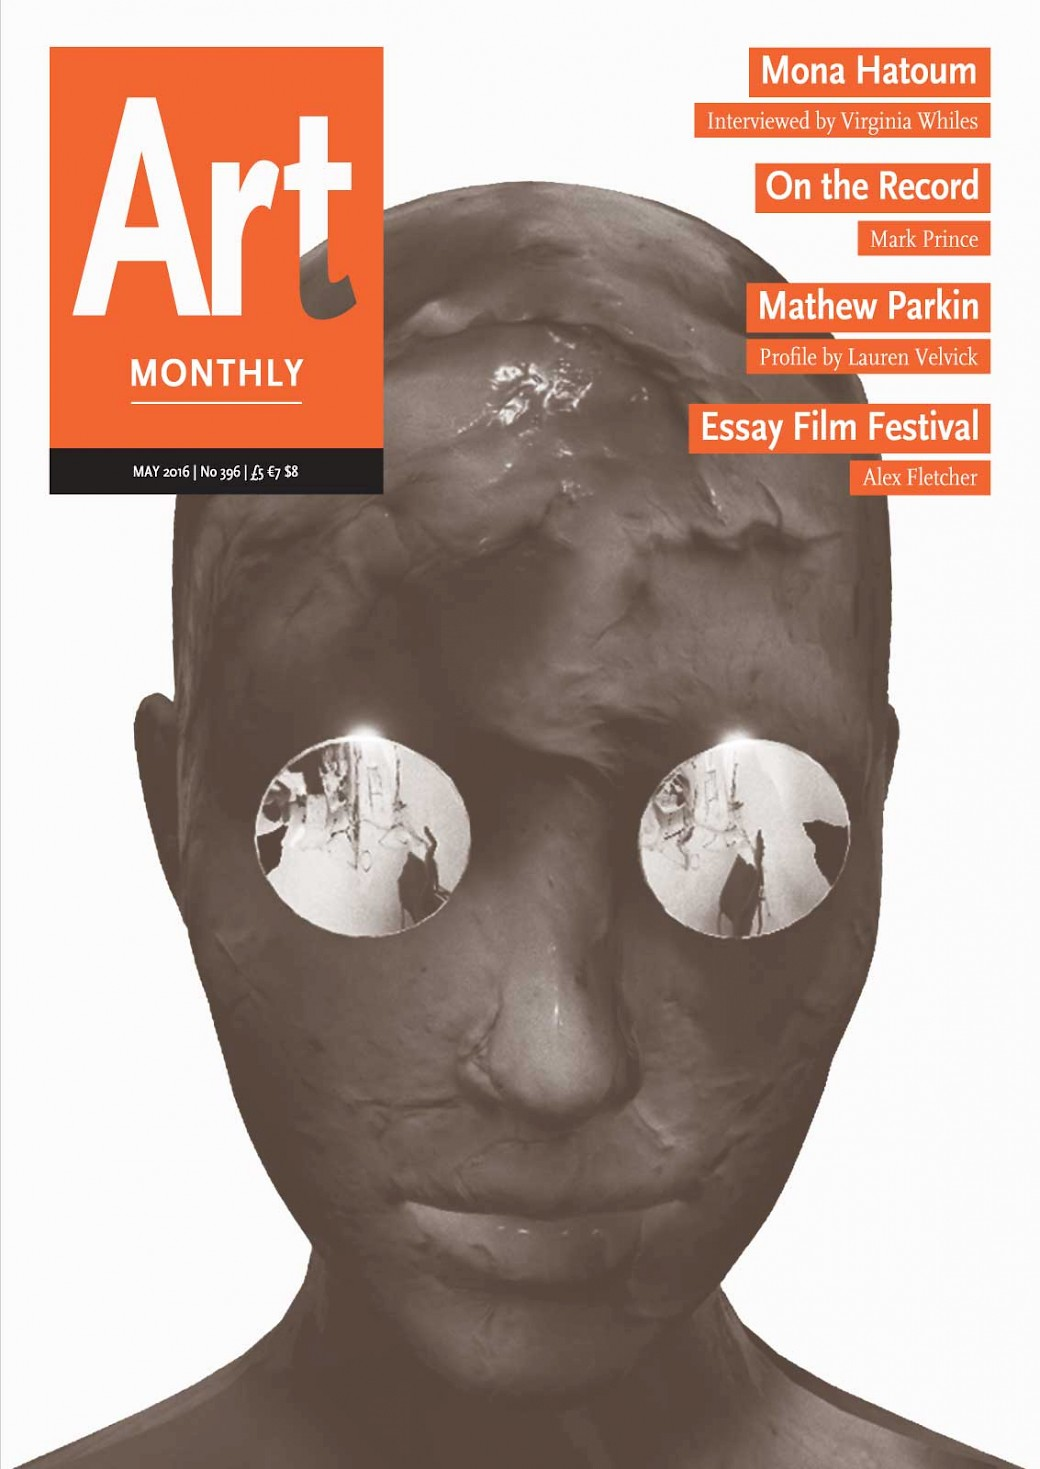 'Dick Girl' is featured on the cover of Art Monthly!